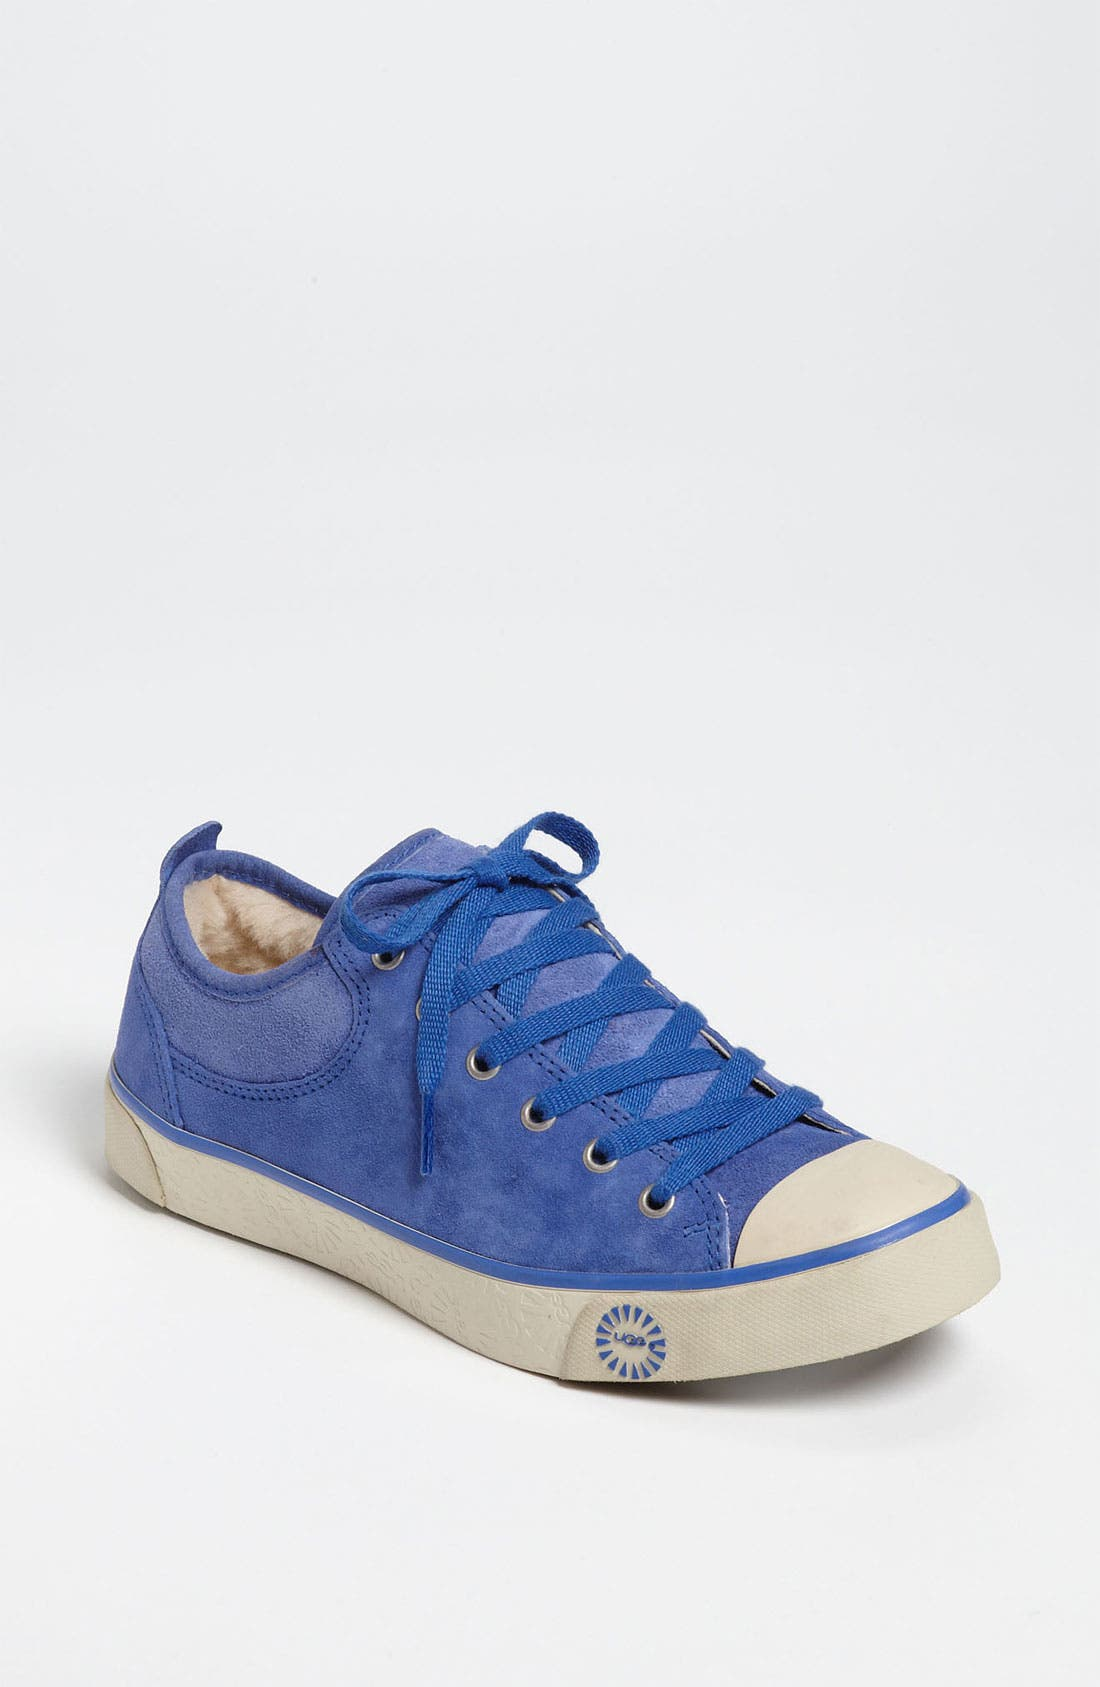 Australia 'Evera' Suede Sneaker,                             Main thumbnail 1, color,                             Deep Periwinkle